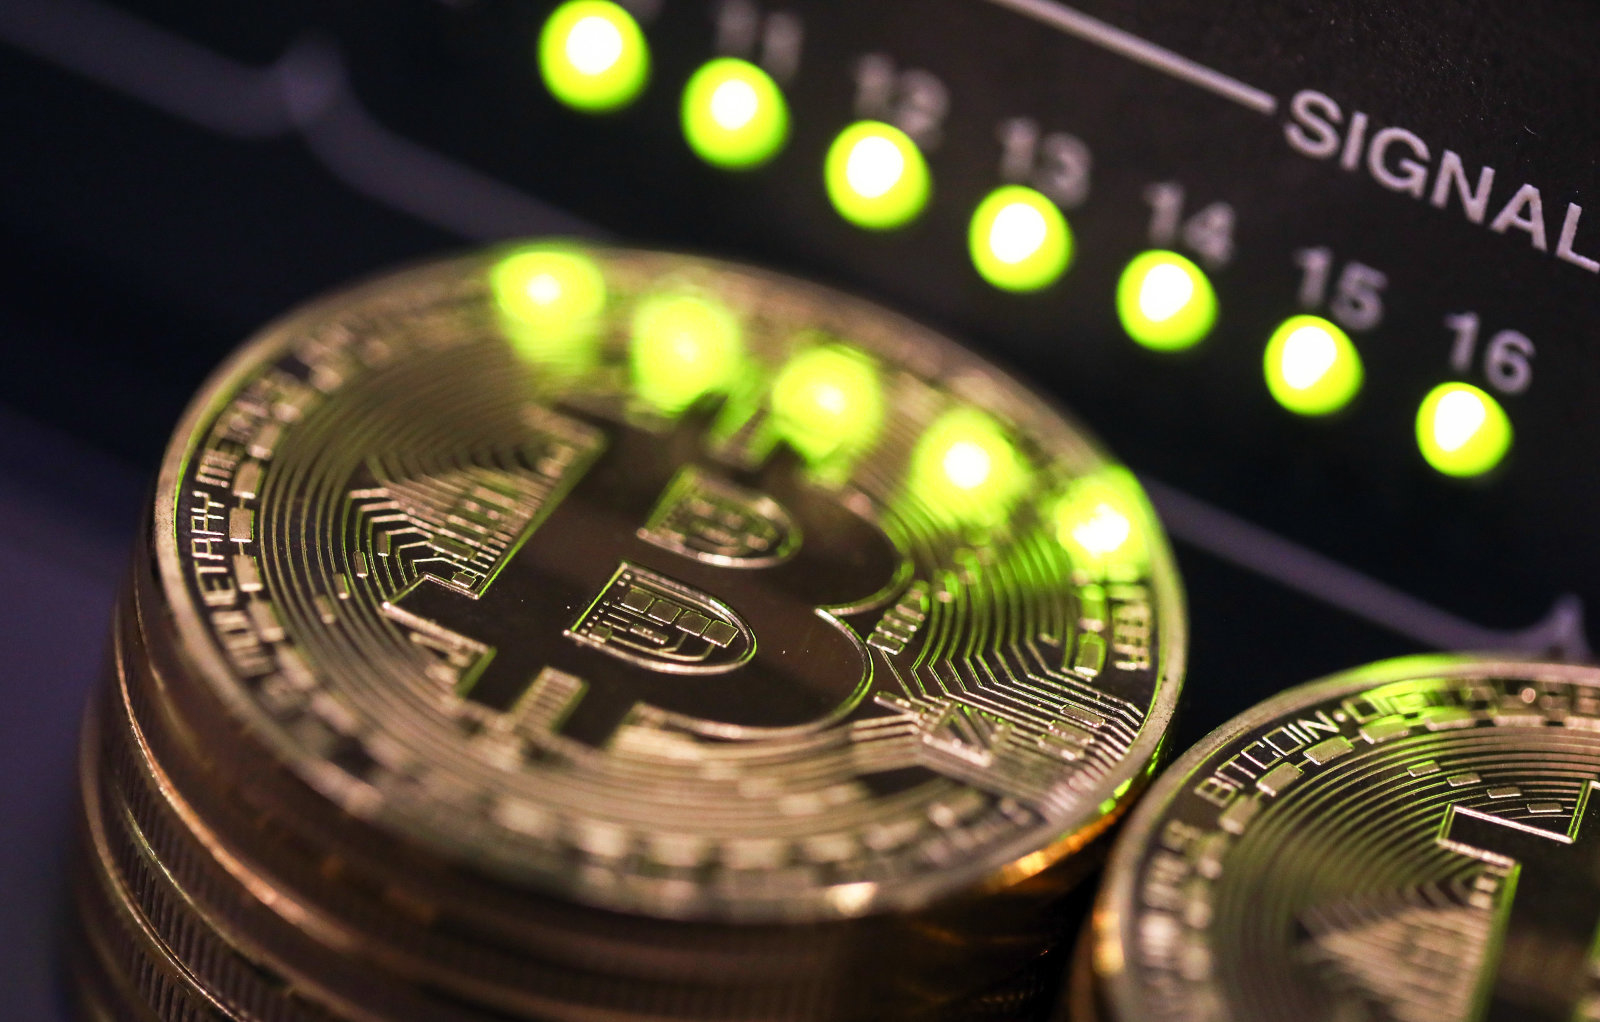 Stacks of bitcoins sit near green lights on a data cable terminal inside a communications room at an office in this arranged photograph in London, U.K., on Tuesday, Sept. 5, 2017. Bitcoin steadied after its biggest drop since June as investors and speculators reappraised the outlook for initial coin offerings. Photographer: Chris Ratcliffe/Bloomberg via Getty Images